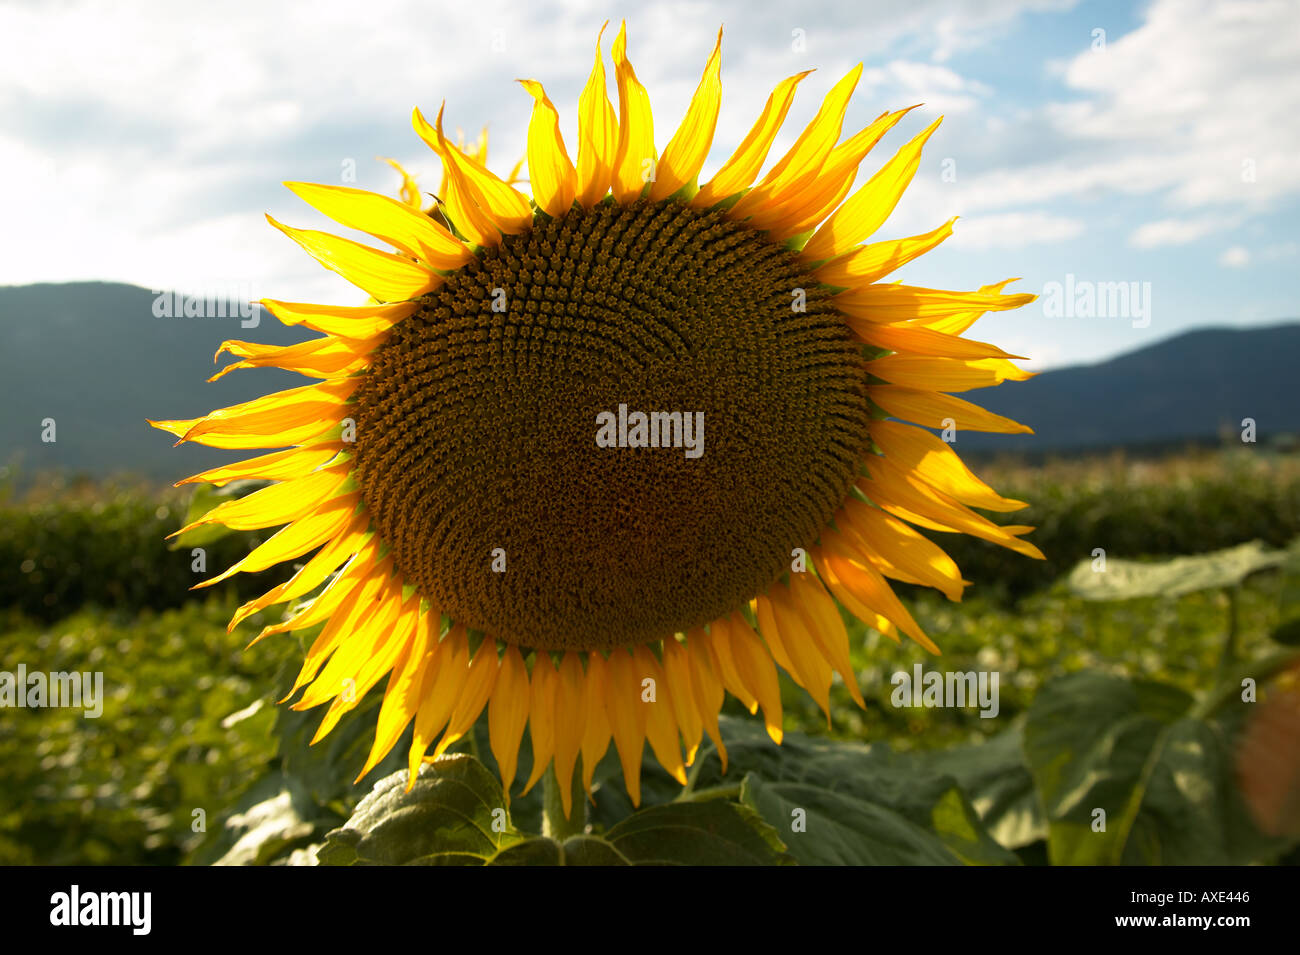 Aesthetic Flower Head Horticultural Natural Petal Floral High Resolution Stock Photography And Images Alamy